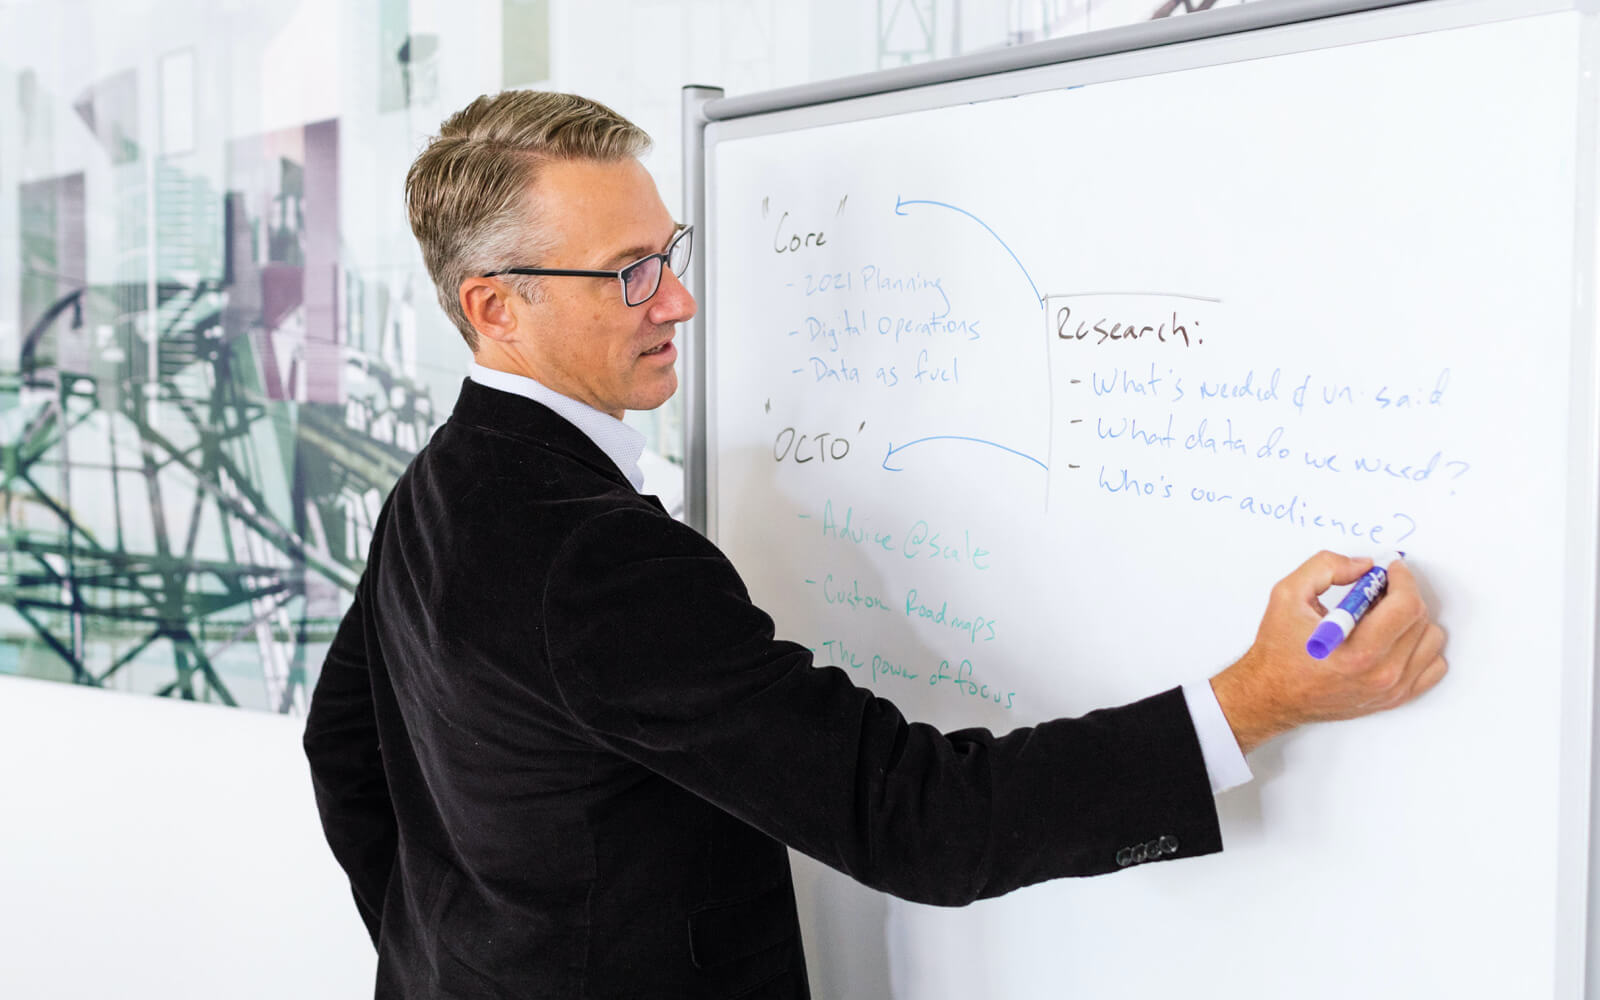 A man writing notes on a whiteboard